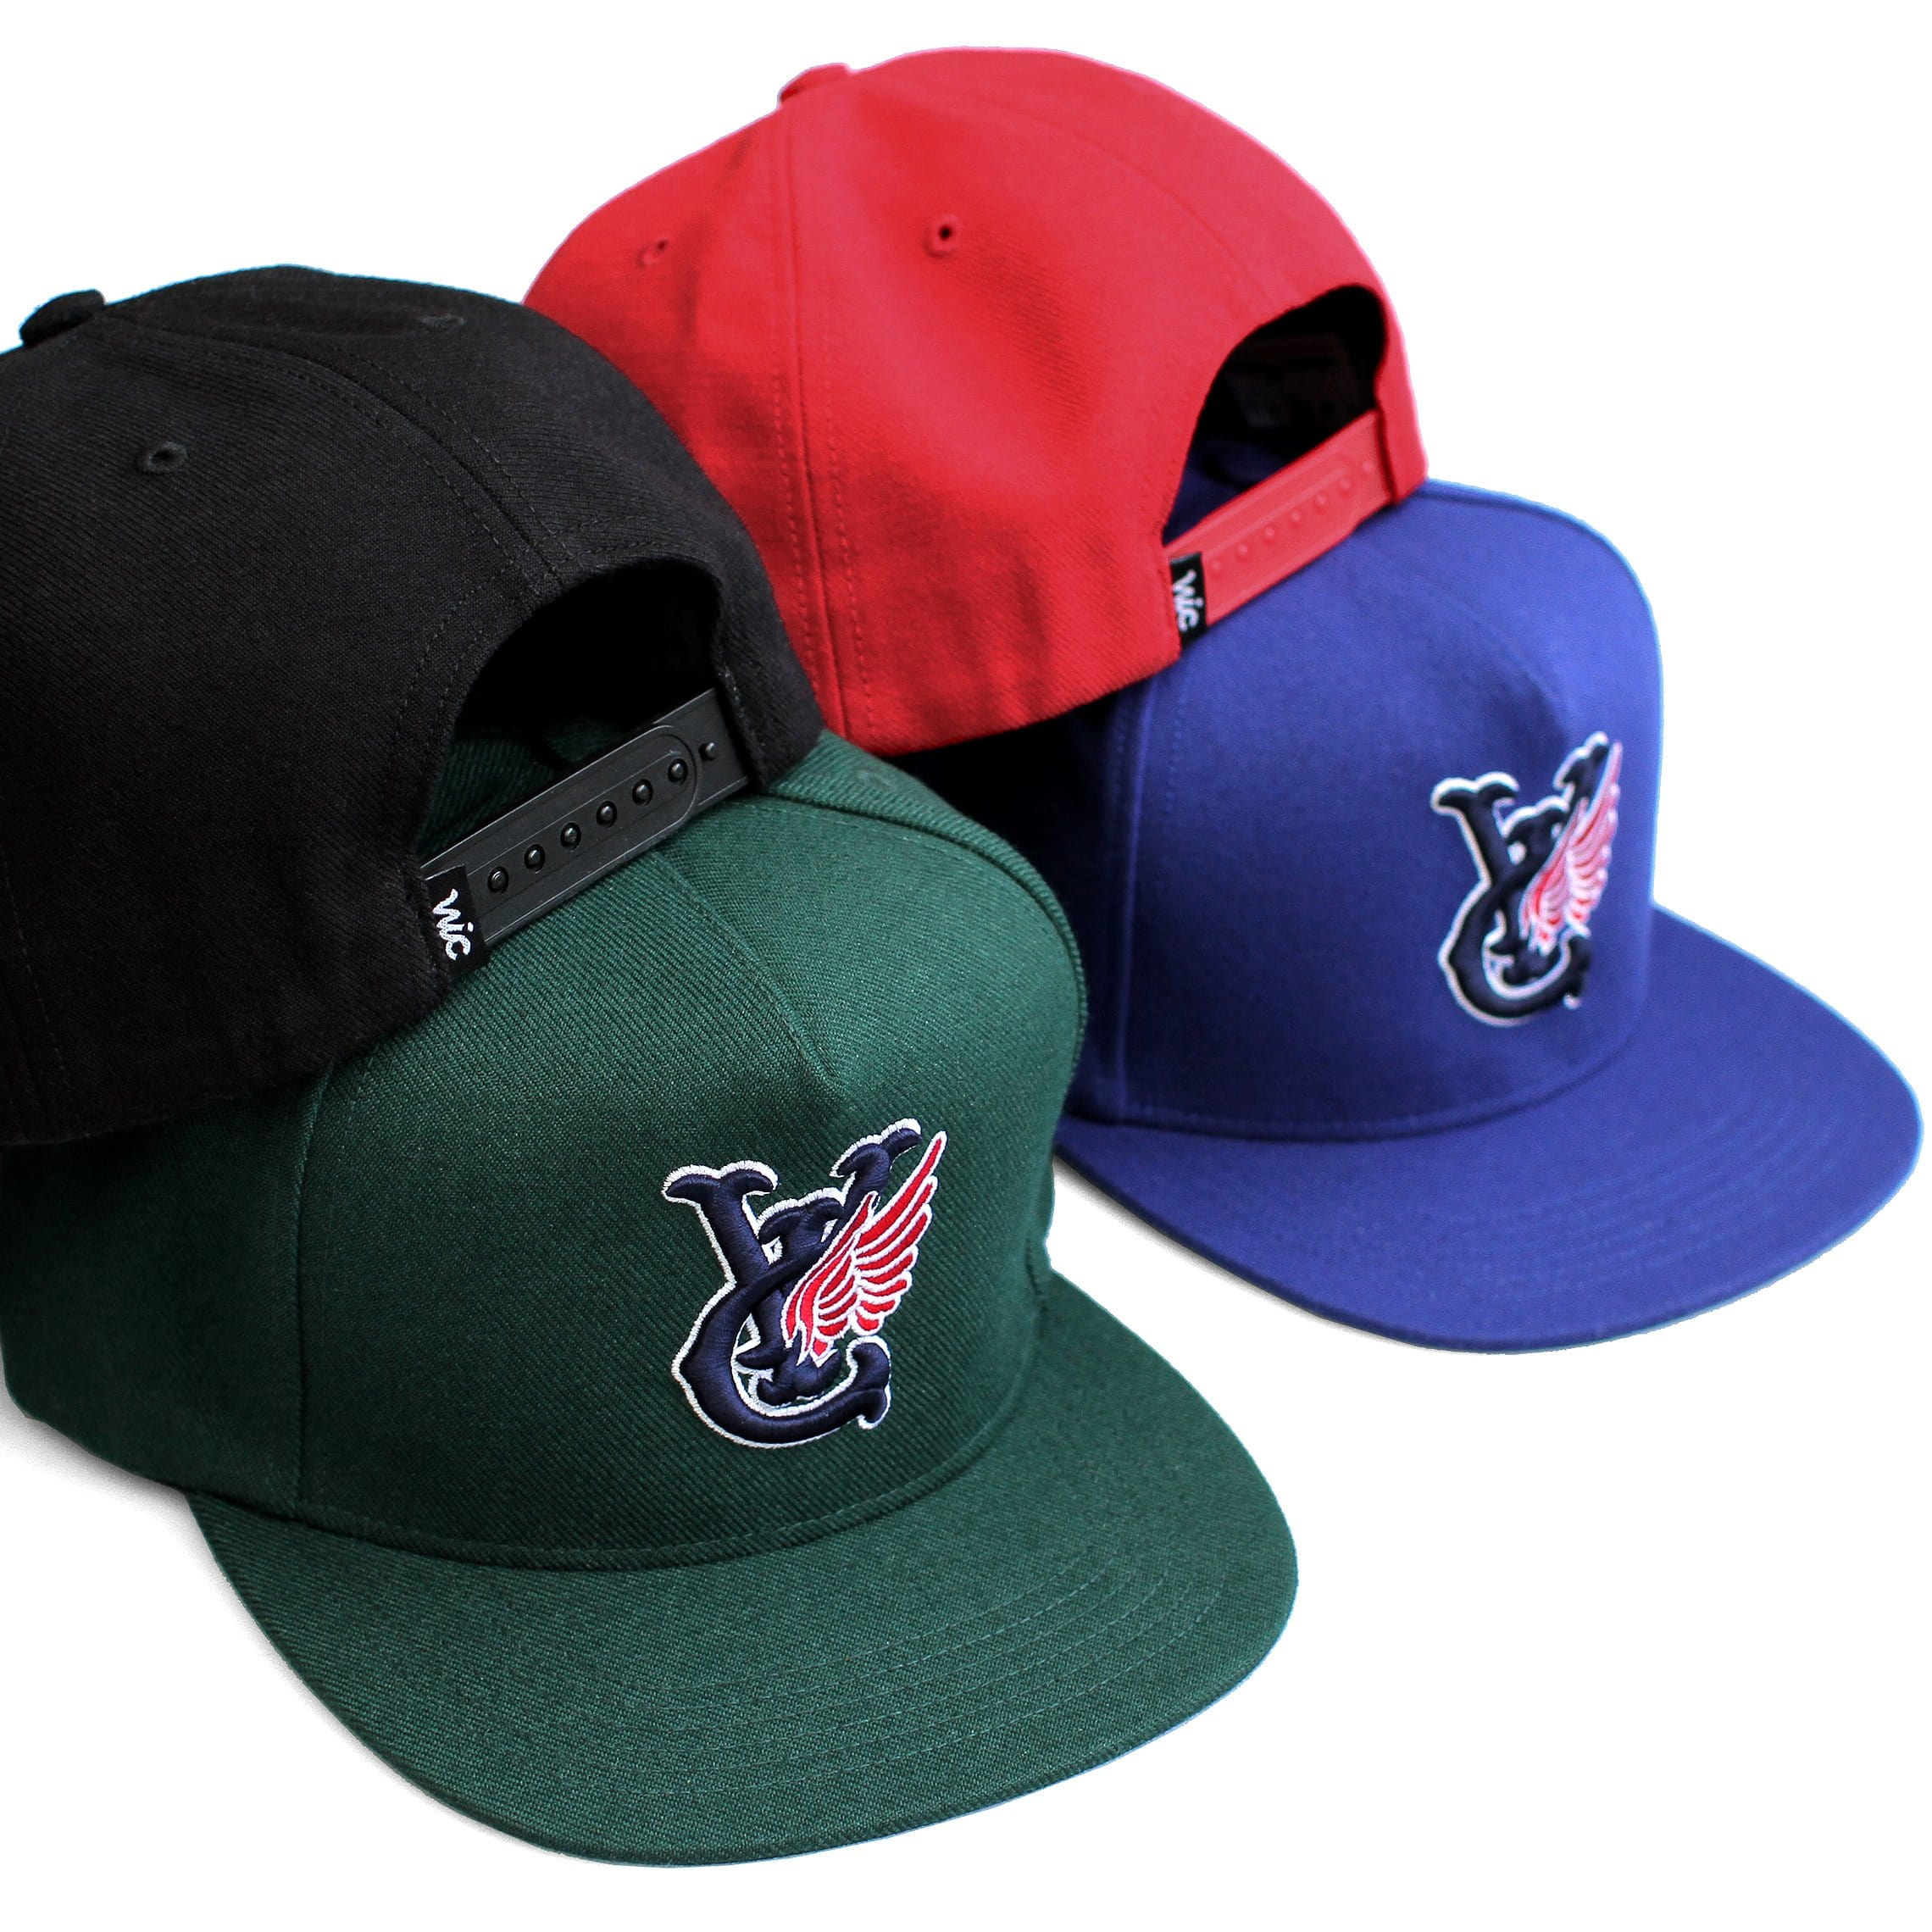 Premium quality baseball snapback hats by New Zealand skate and streetwear clothing label VIC Apparel. Embroidered logo. A-frame snapback cap style, hand made in the USA.